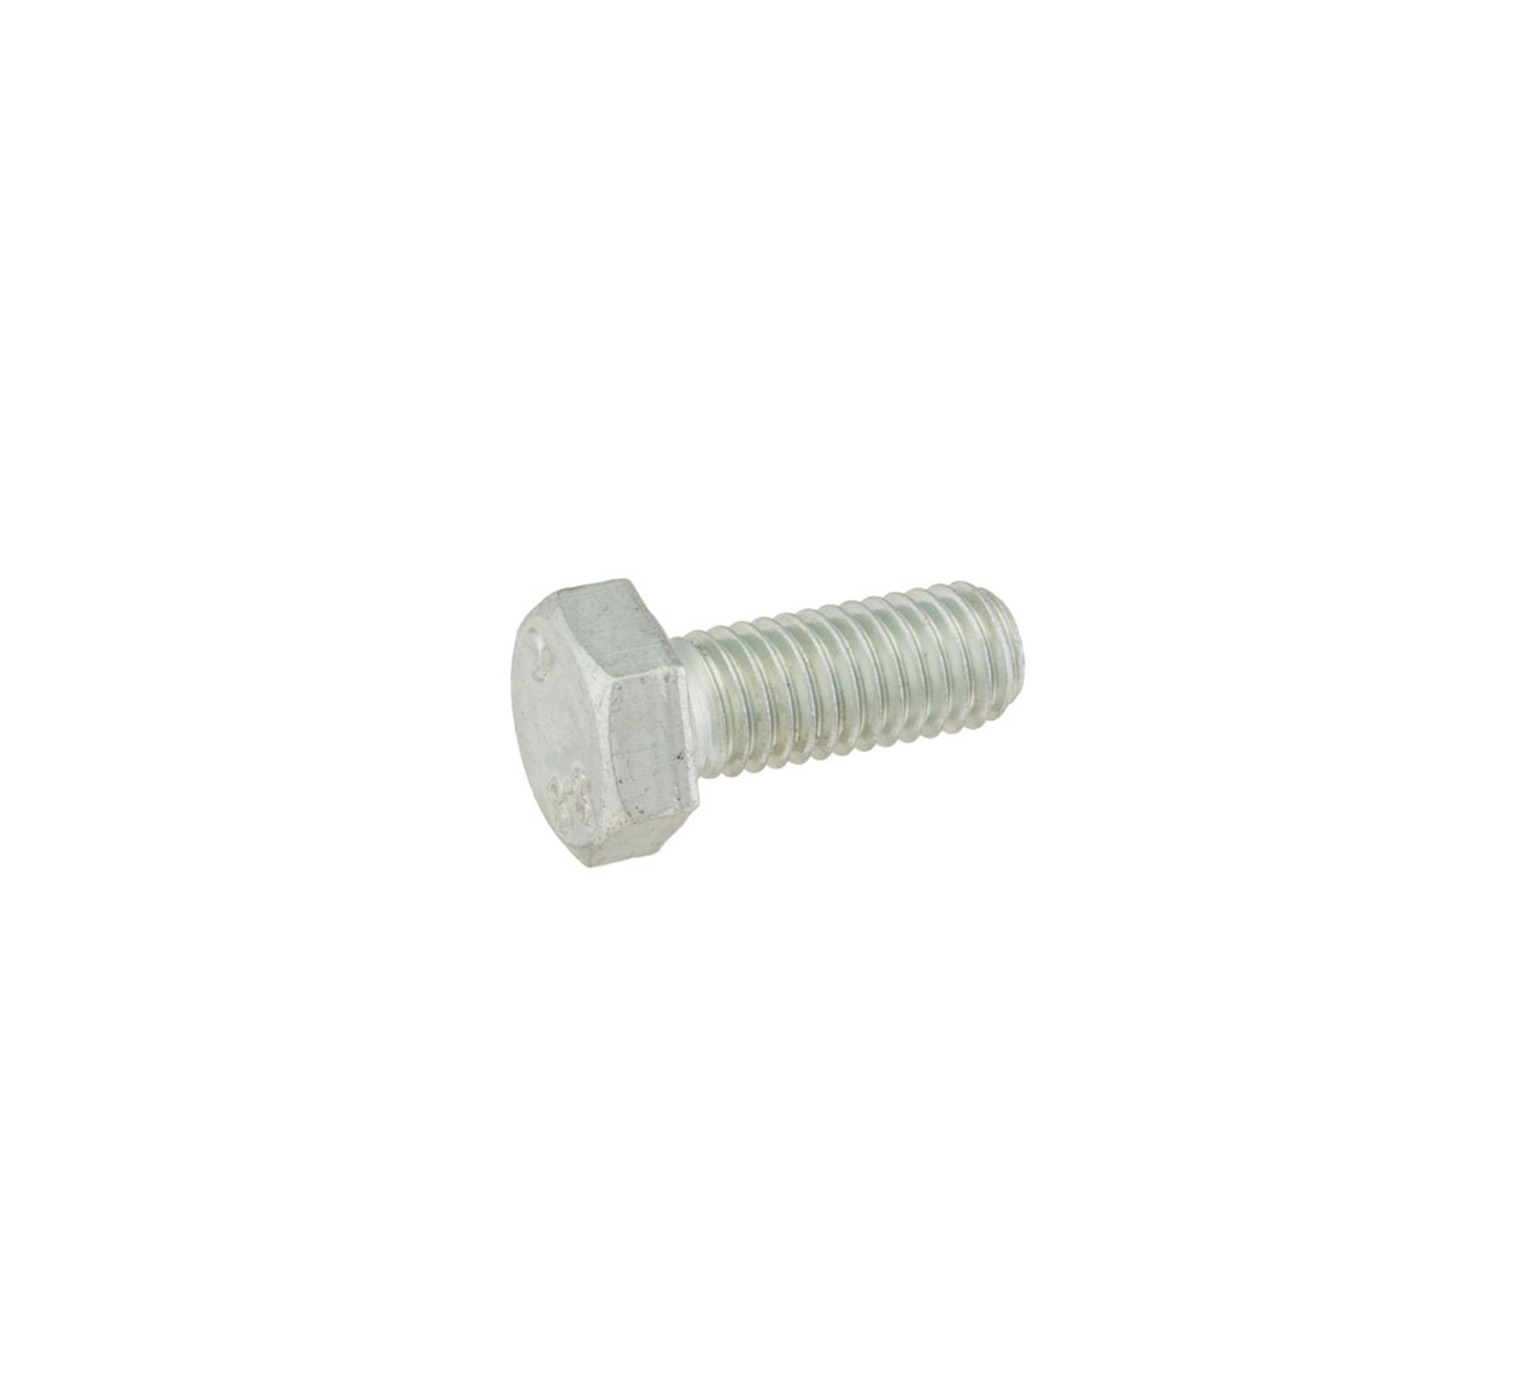 16931 Steel Hex Flat Screw - M8 Thread x 0.75 in alt 1